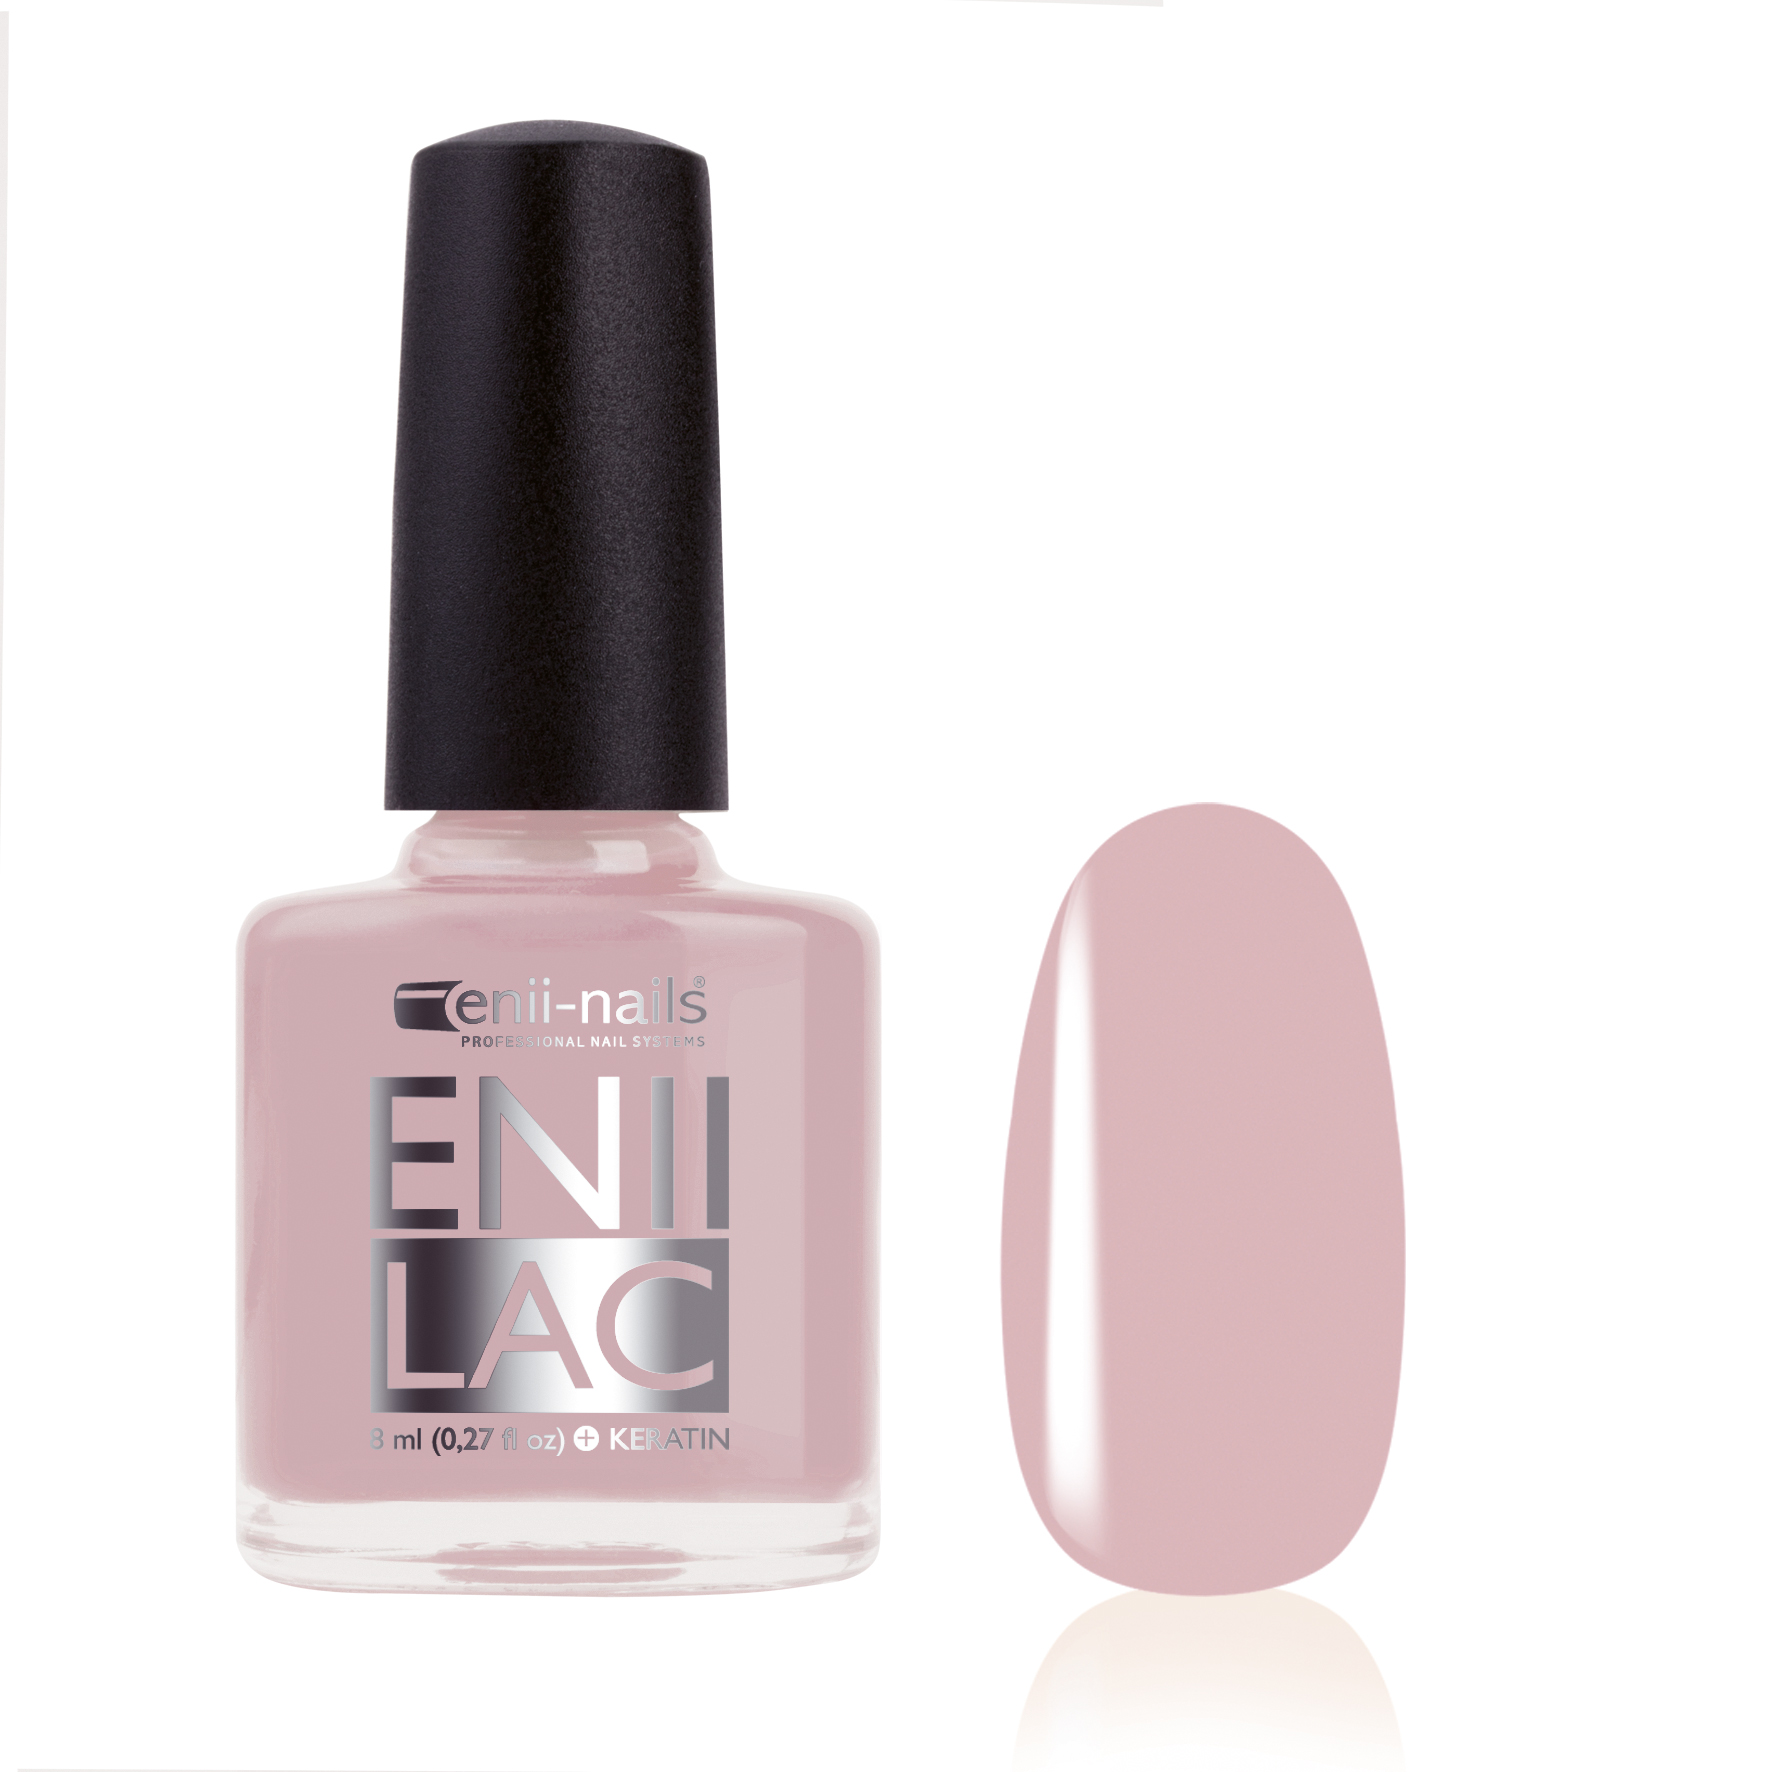 ENII-NAILS ENII LAC 8 ml - Think Pink